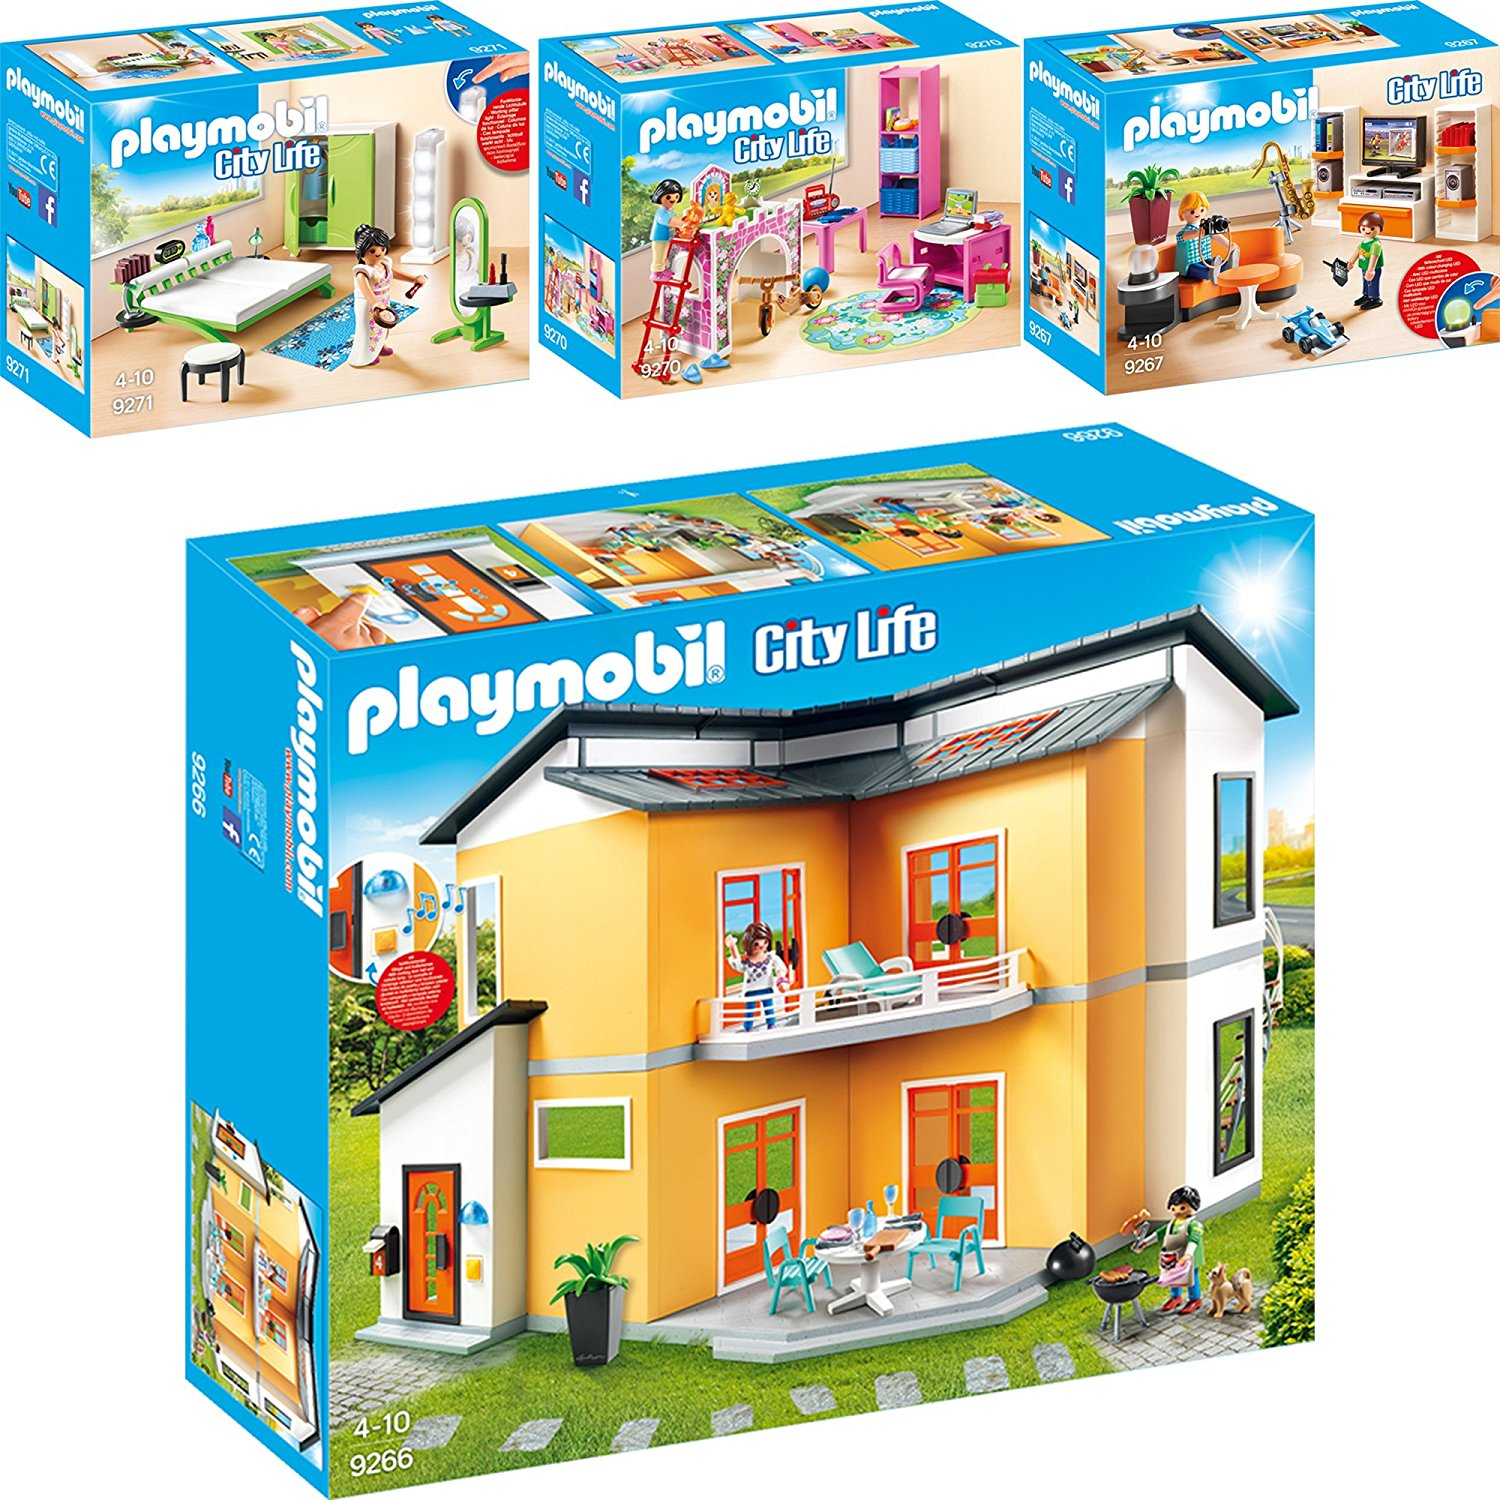 Extraordinary Maison Moderne City Life Playmobil Gallery - Best ...